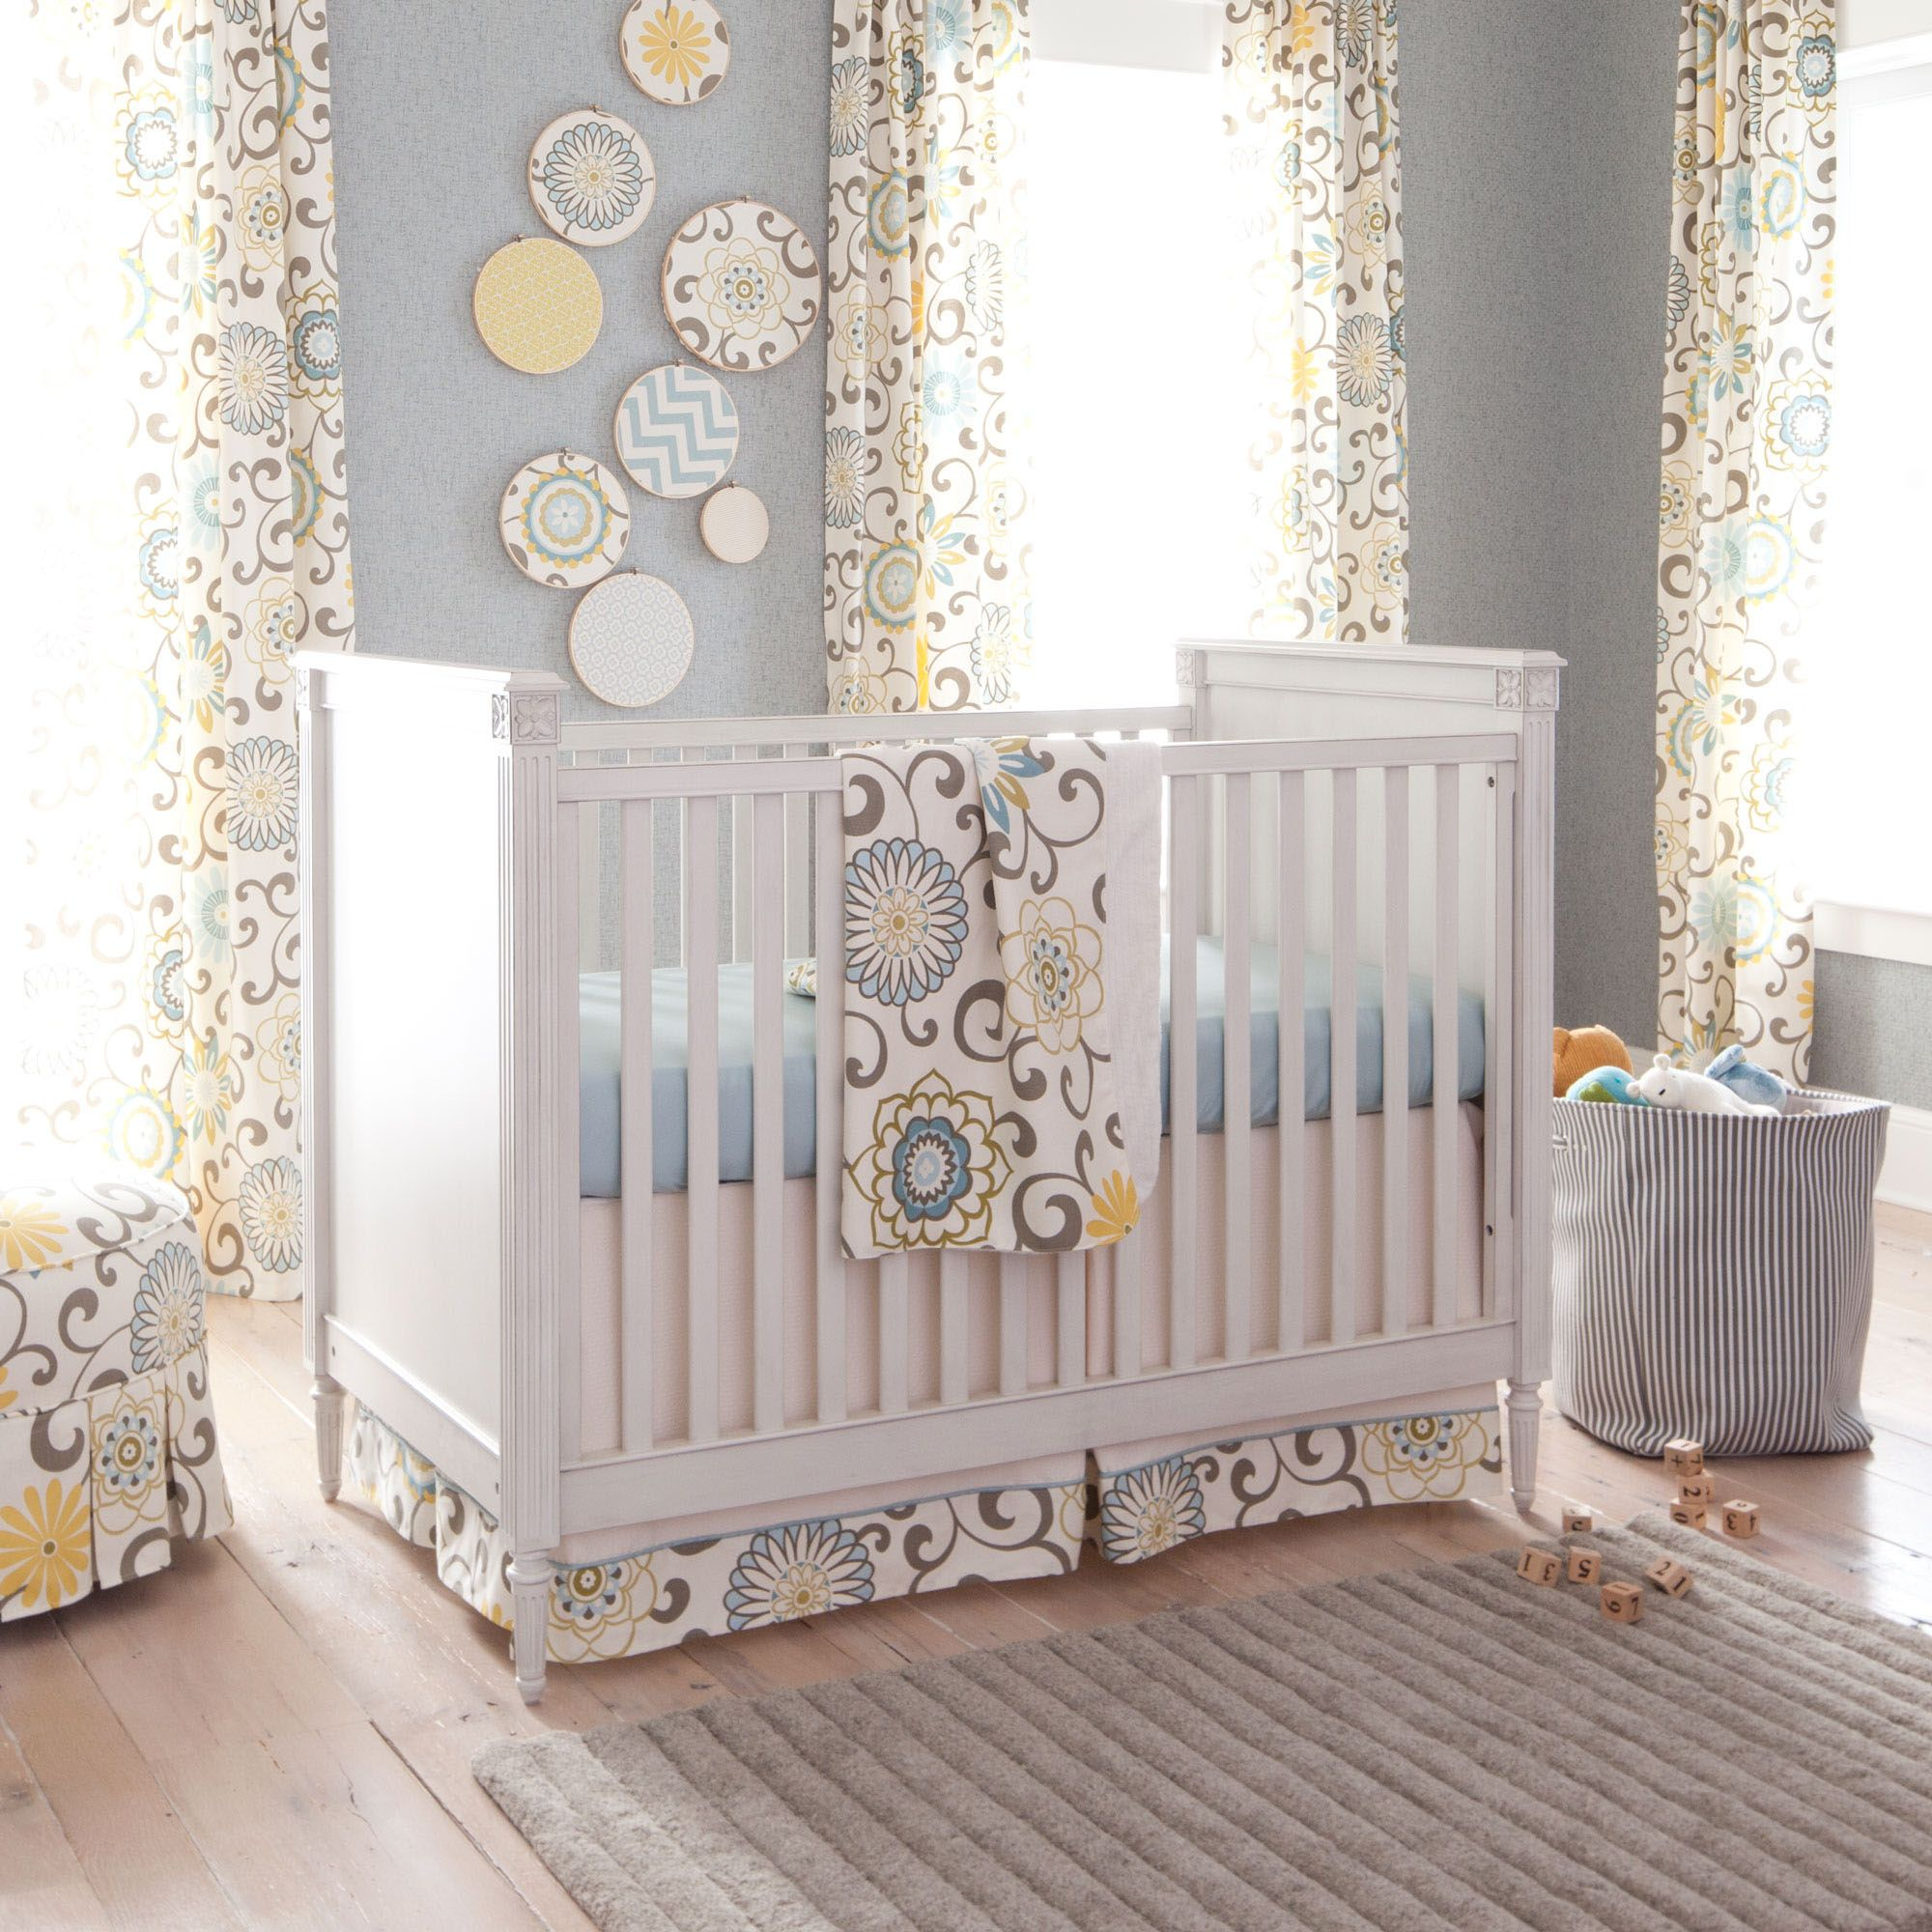 Giveaway Carousel Designs Crib Bedding Set Baby Room Design